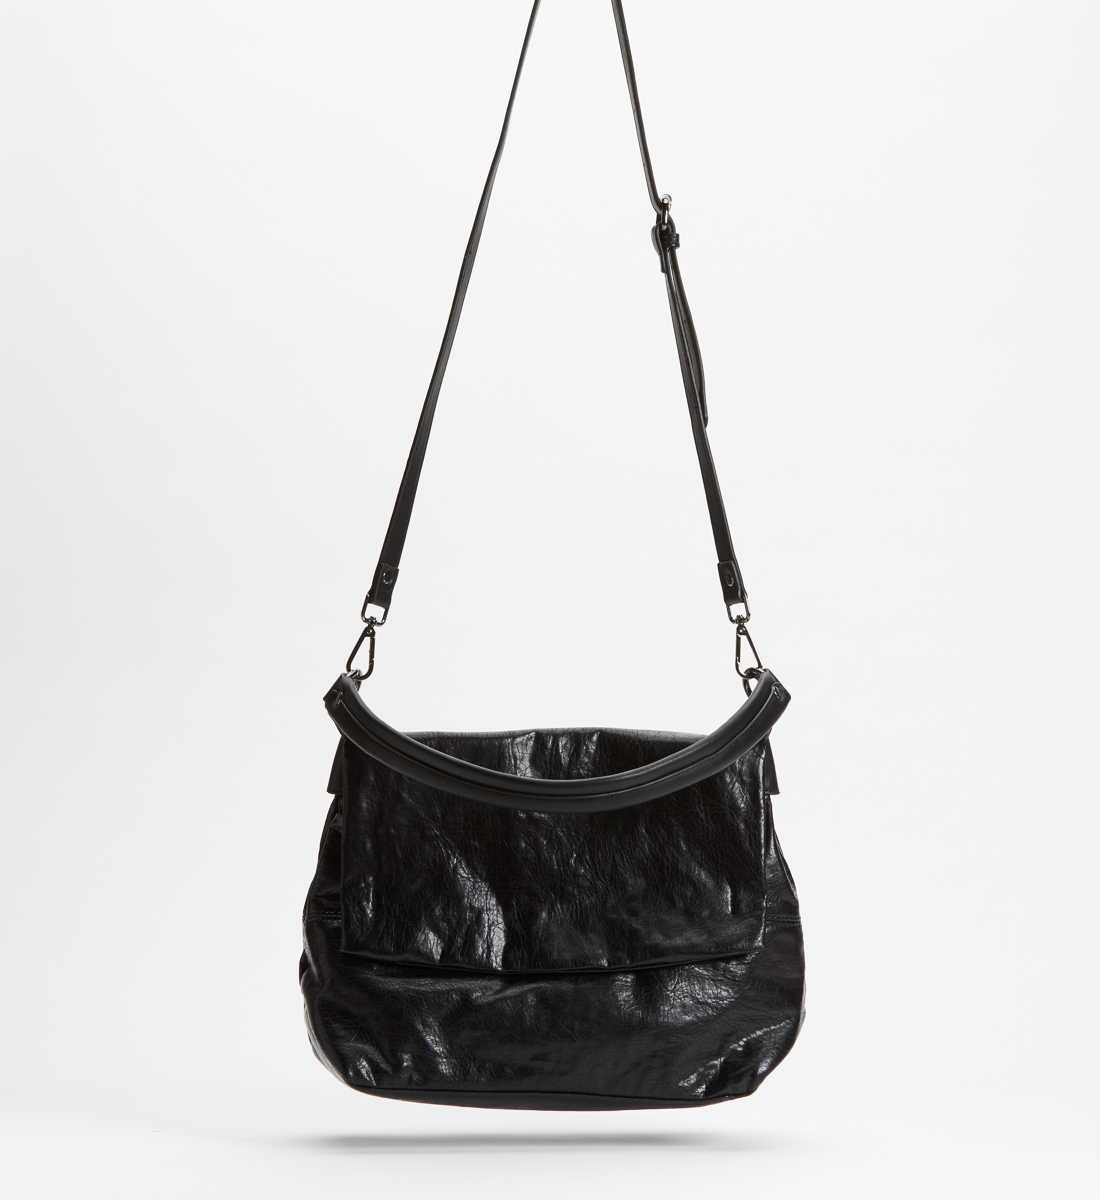 Flap Satchel,Black Front